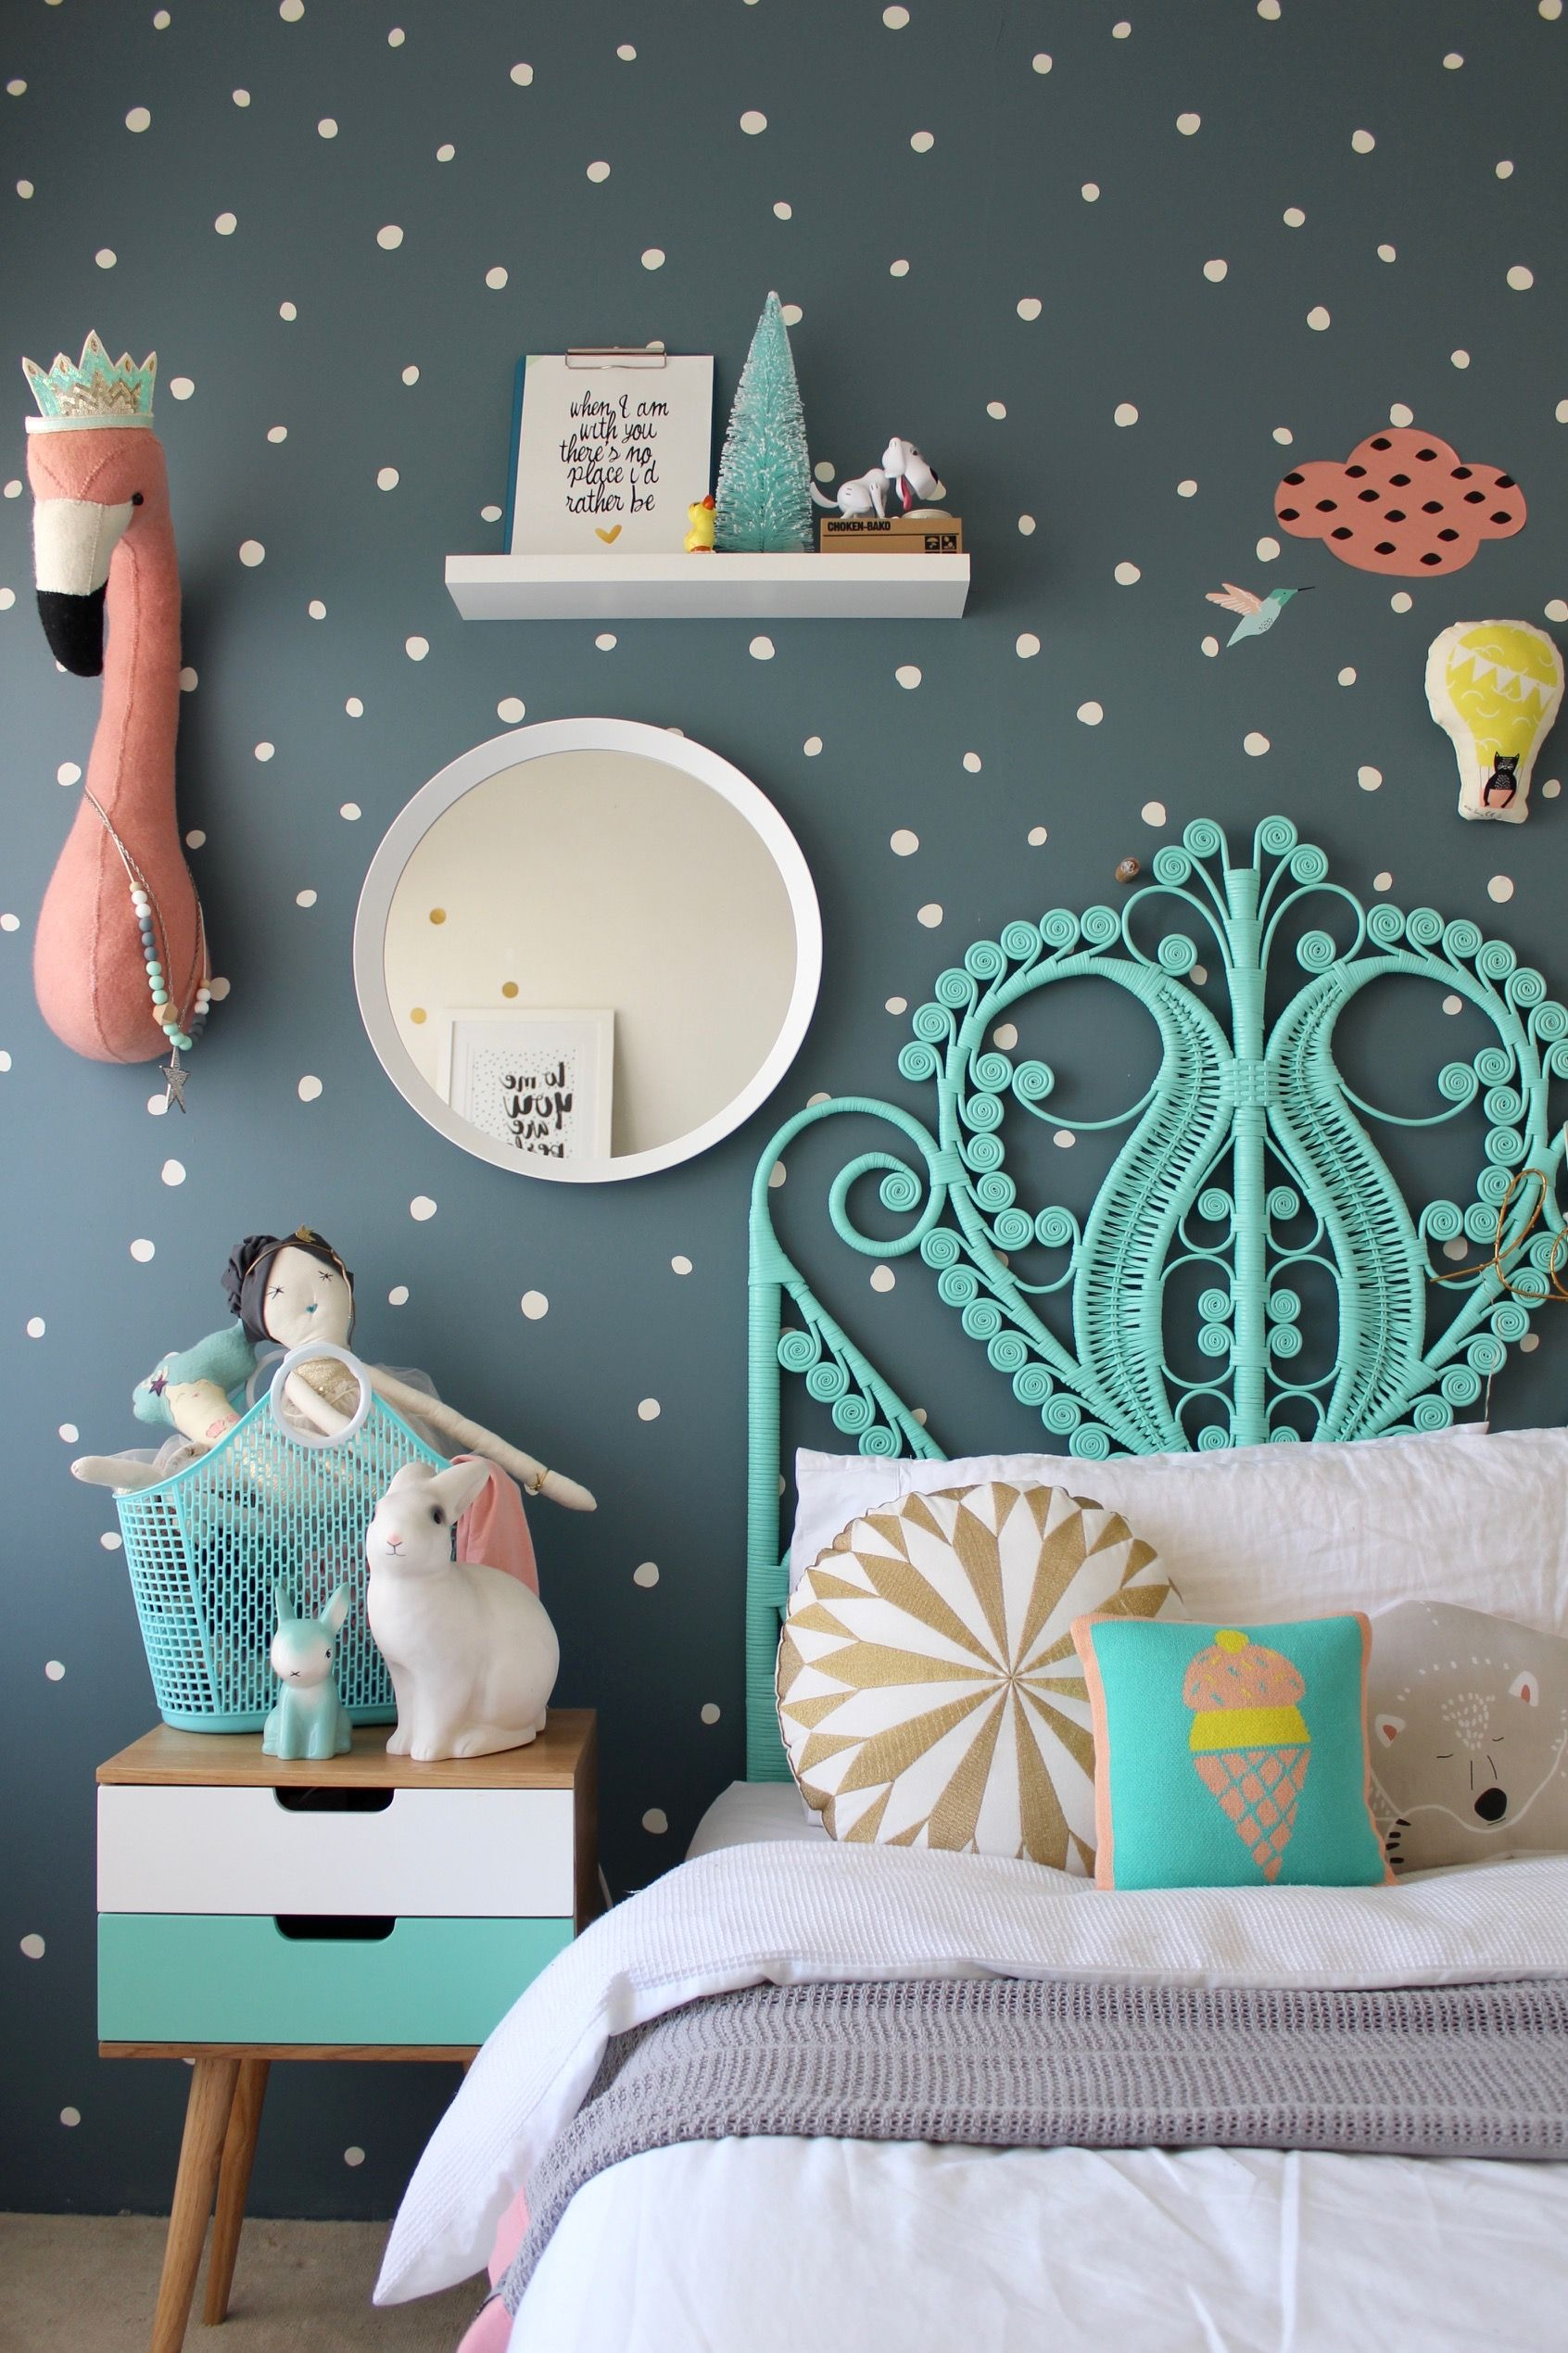 Childrens Bedroom Colour Schemes More Fun Childrens Bedroom Ideas For Girls On The Blog Using